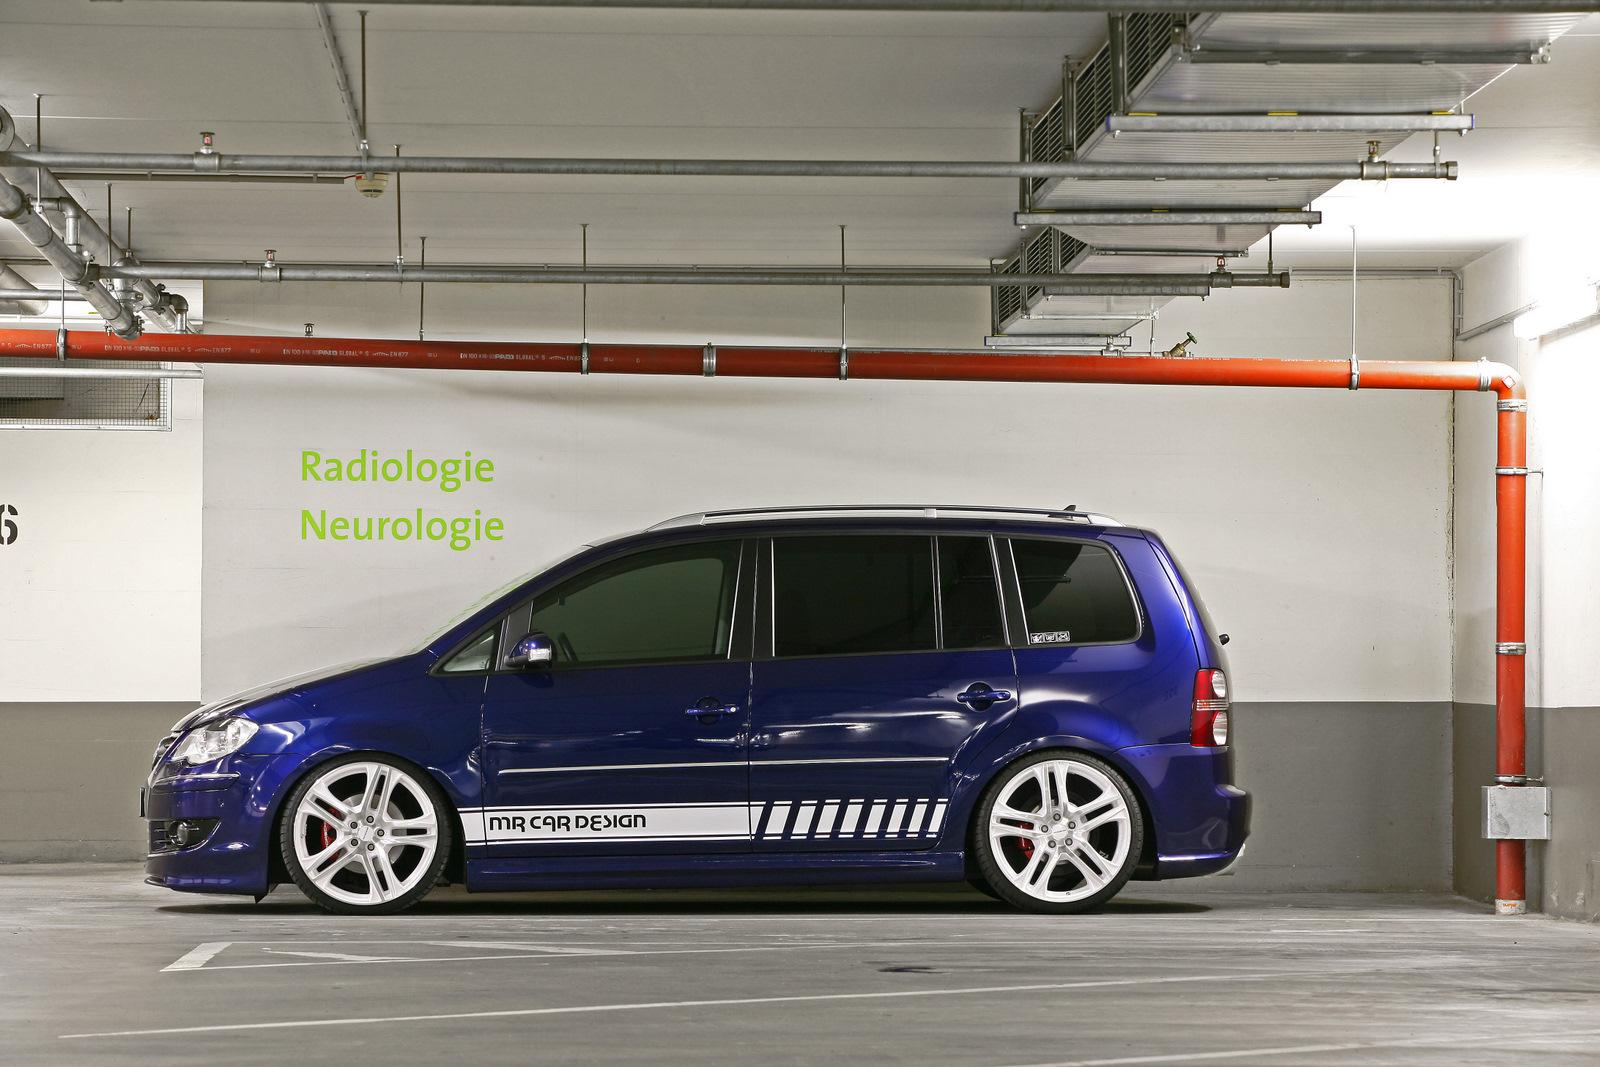 VW Touran tuned by MR Car Design